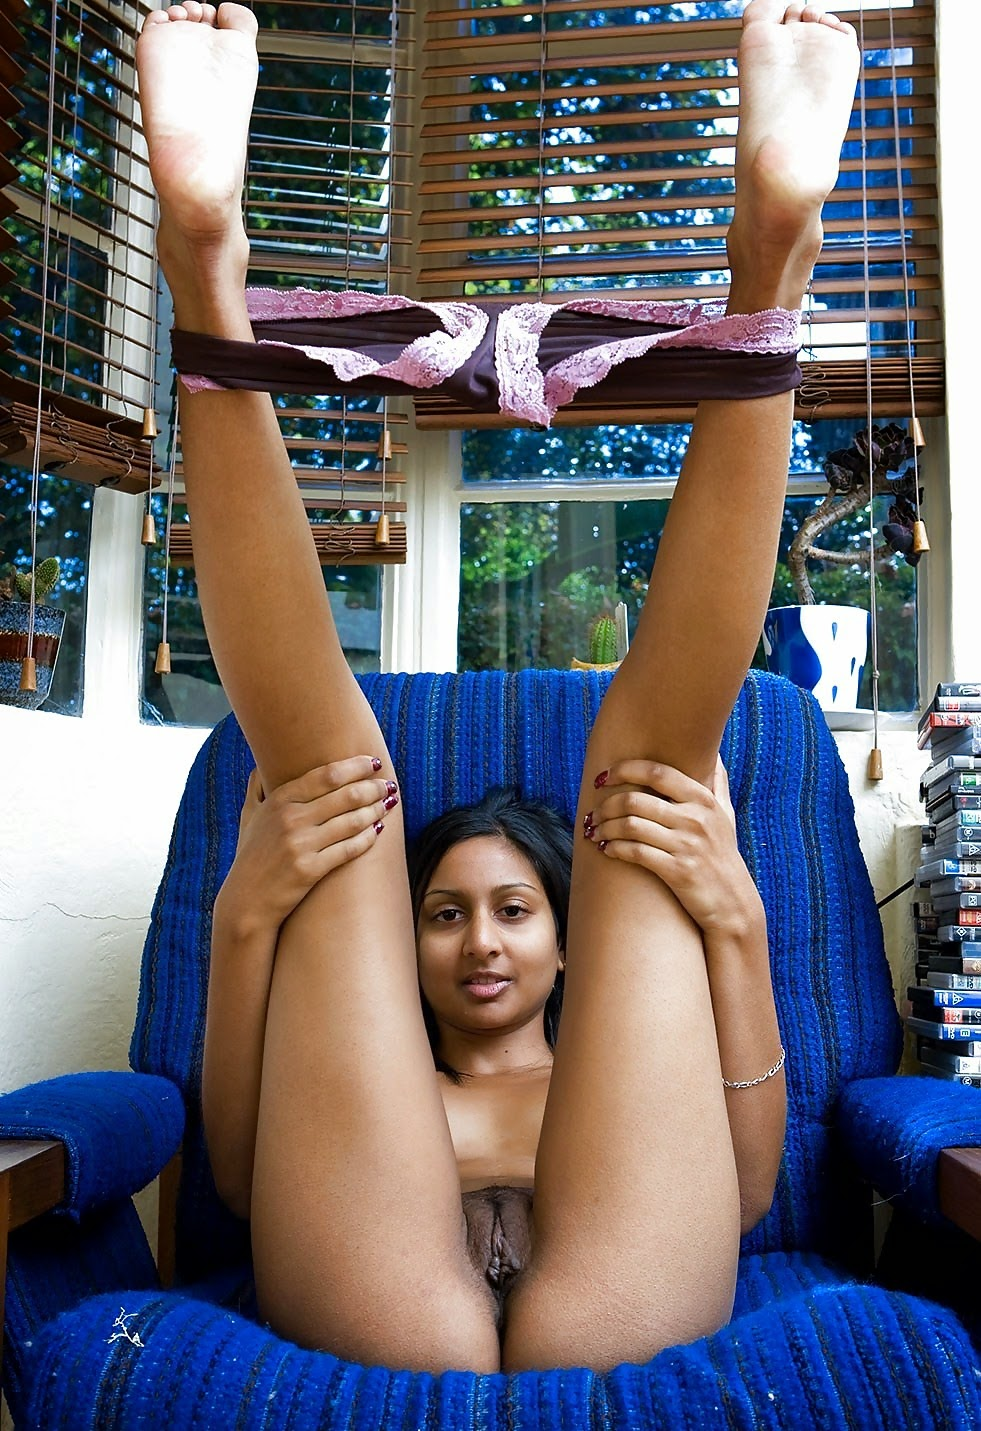 India Sex Tamil Good ◉ desi girls photos - tamil nude girls photos - indian nude